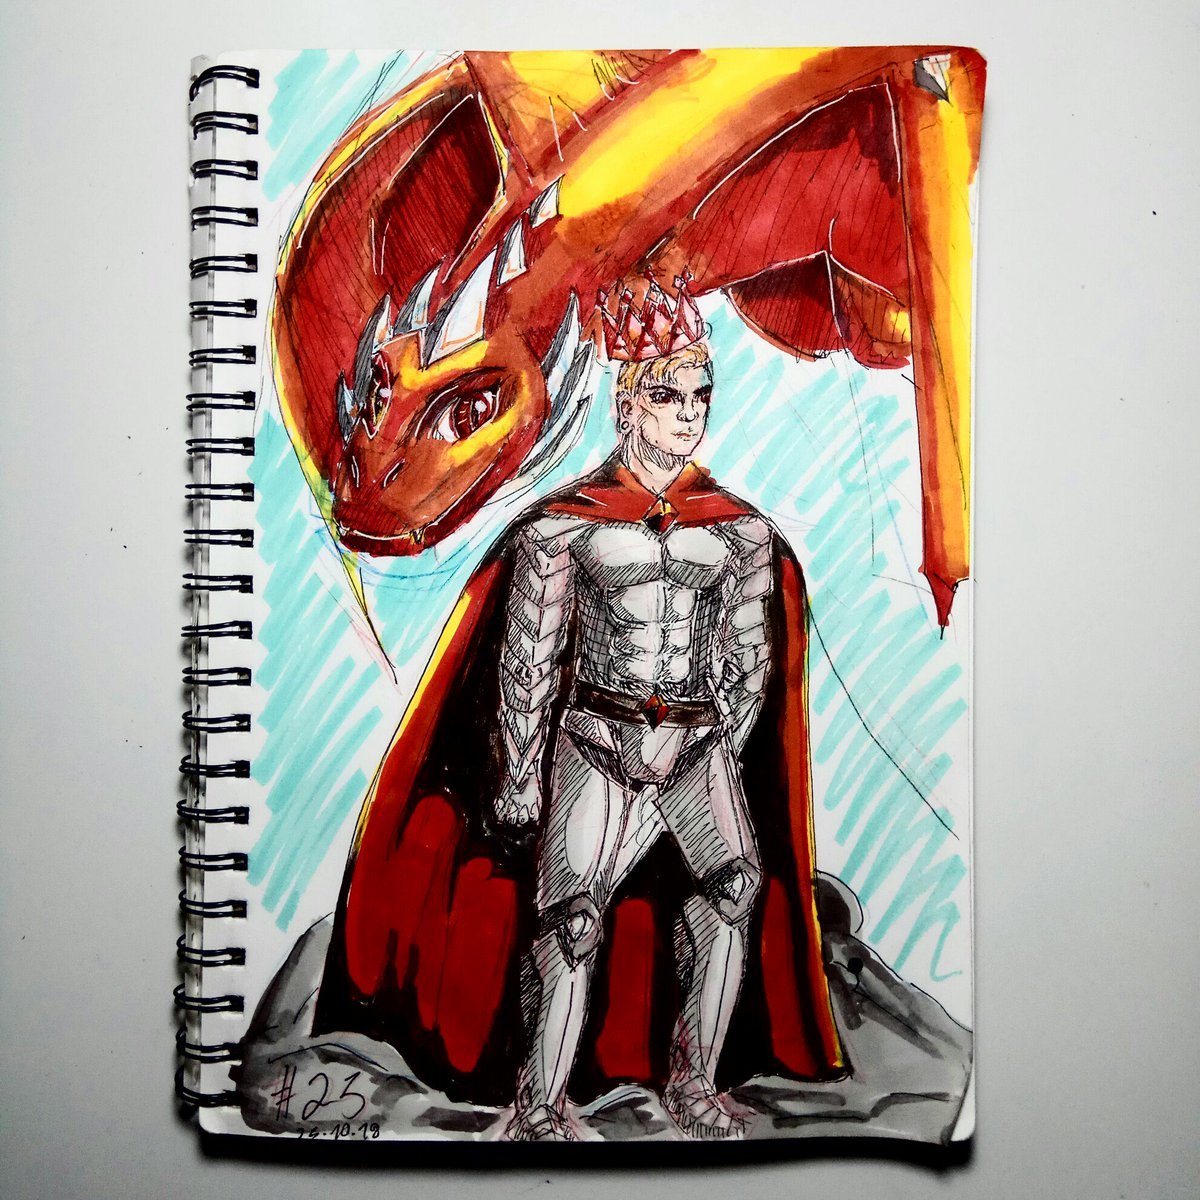 These are my beautiful royals. Burning like the bane of the flame. #art #oc #characterdesign #characterart #fantasy #dragon #markers #medivaltimes